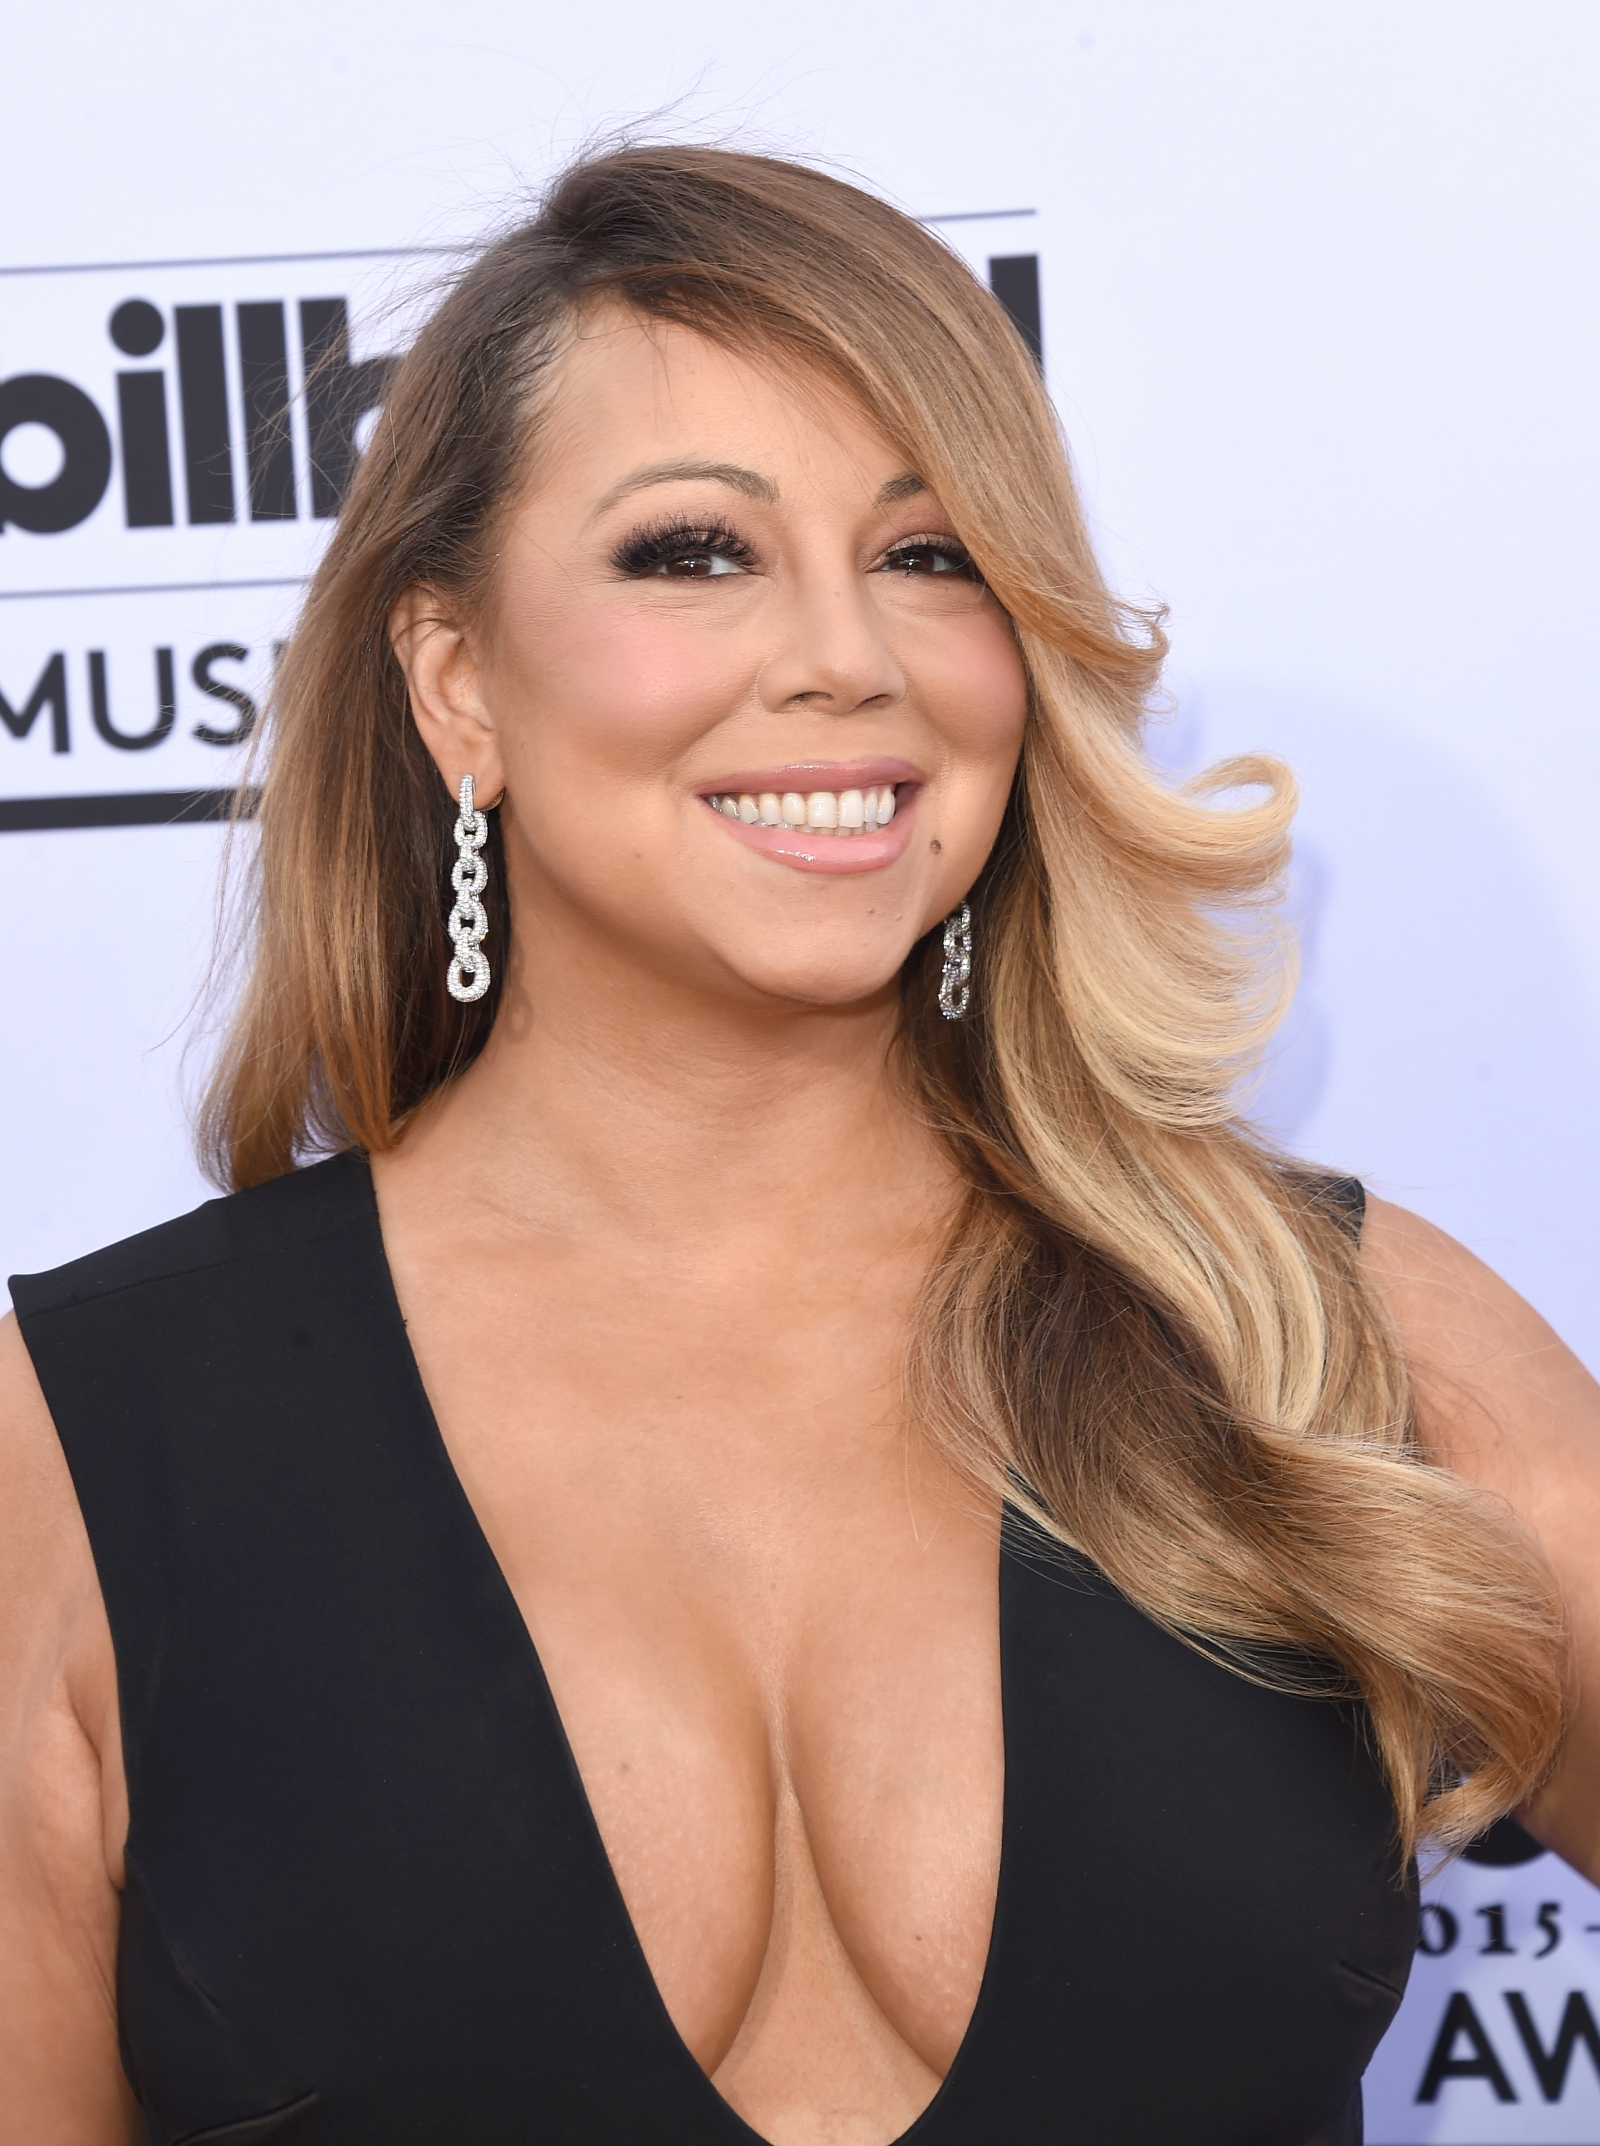 <b>Mariah Carey</b> to marry billionaire James Packer? Singer 'could wed after Nick ... - mariah-carey